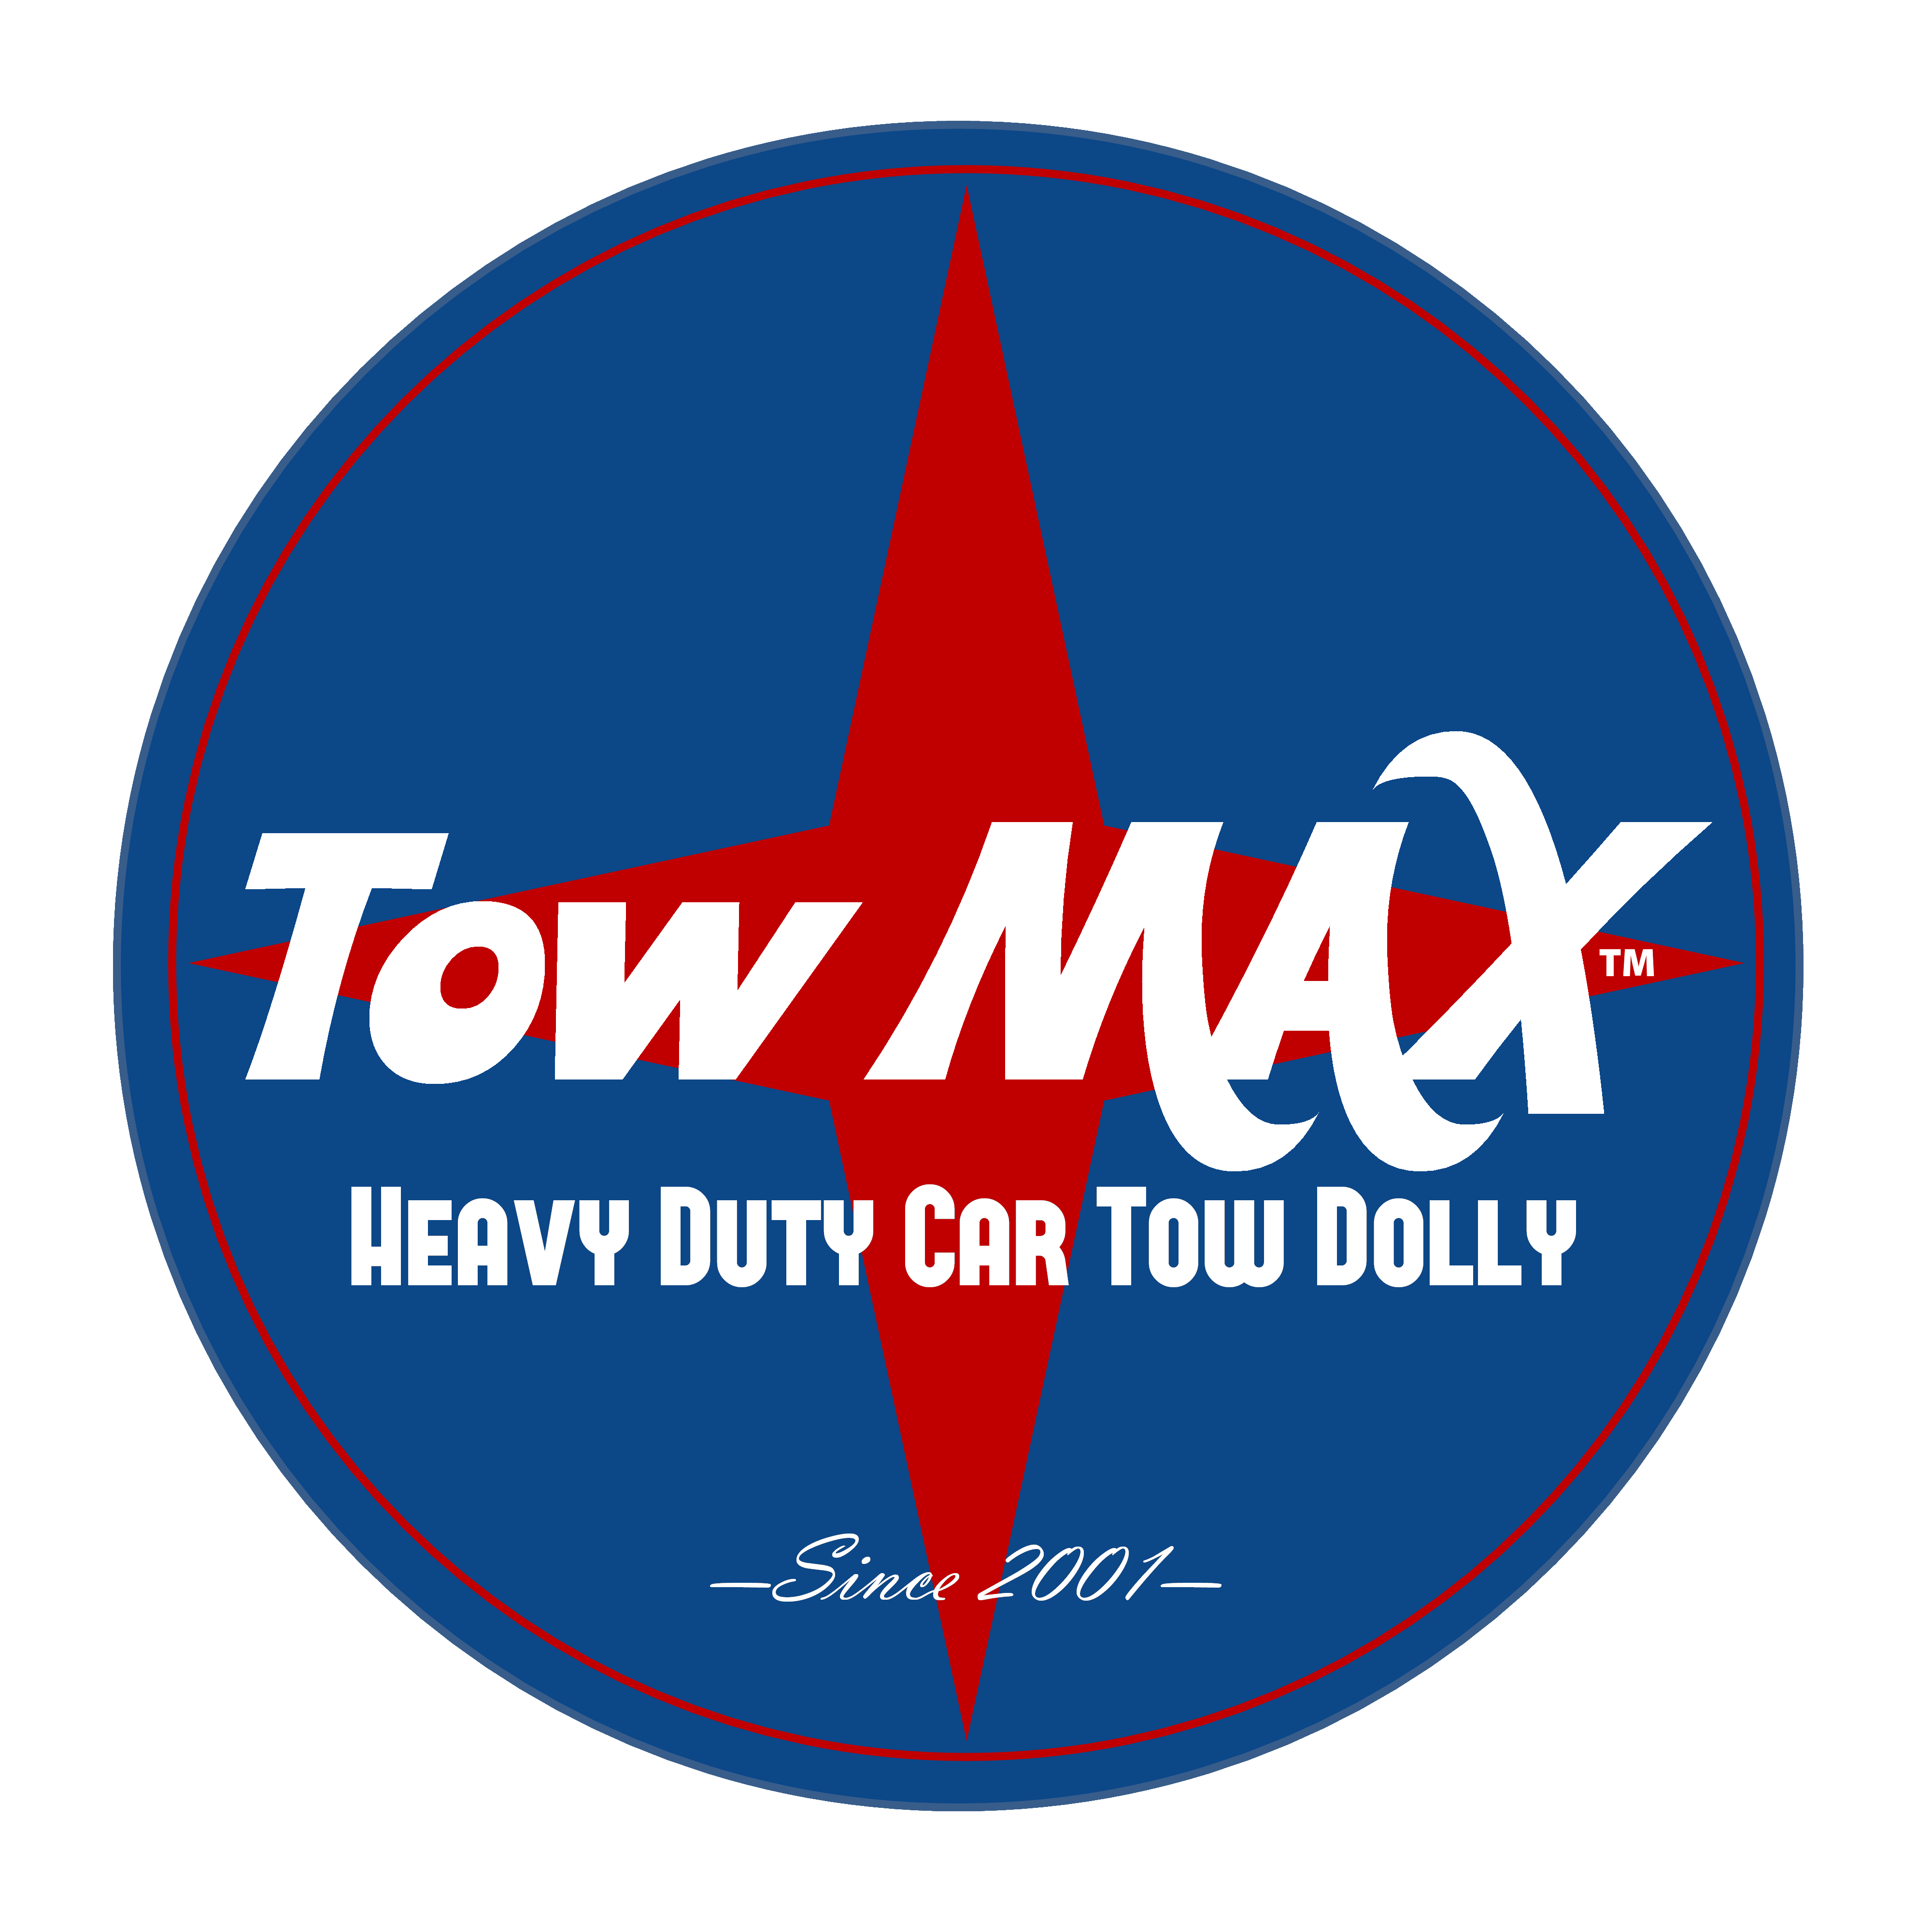 tow-max-combination-mark-logo-4000x4000-final.png